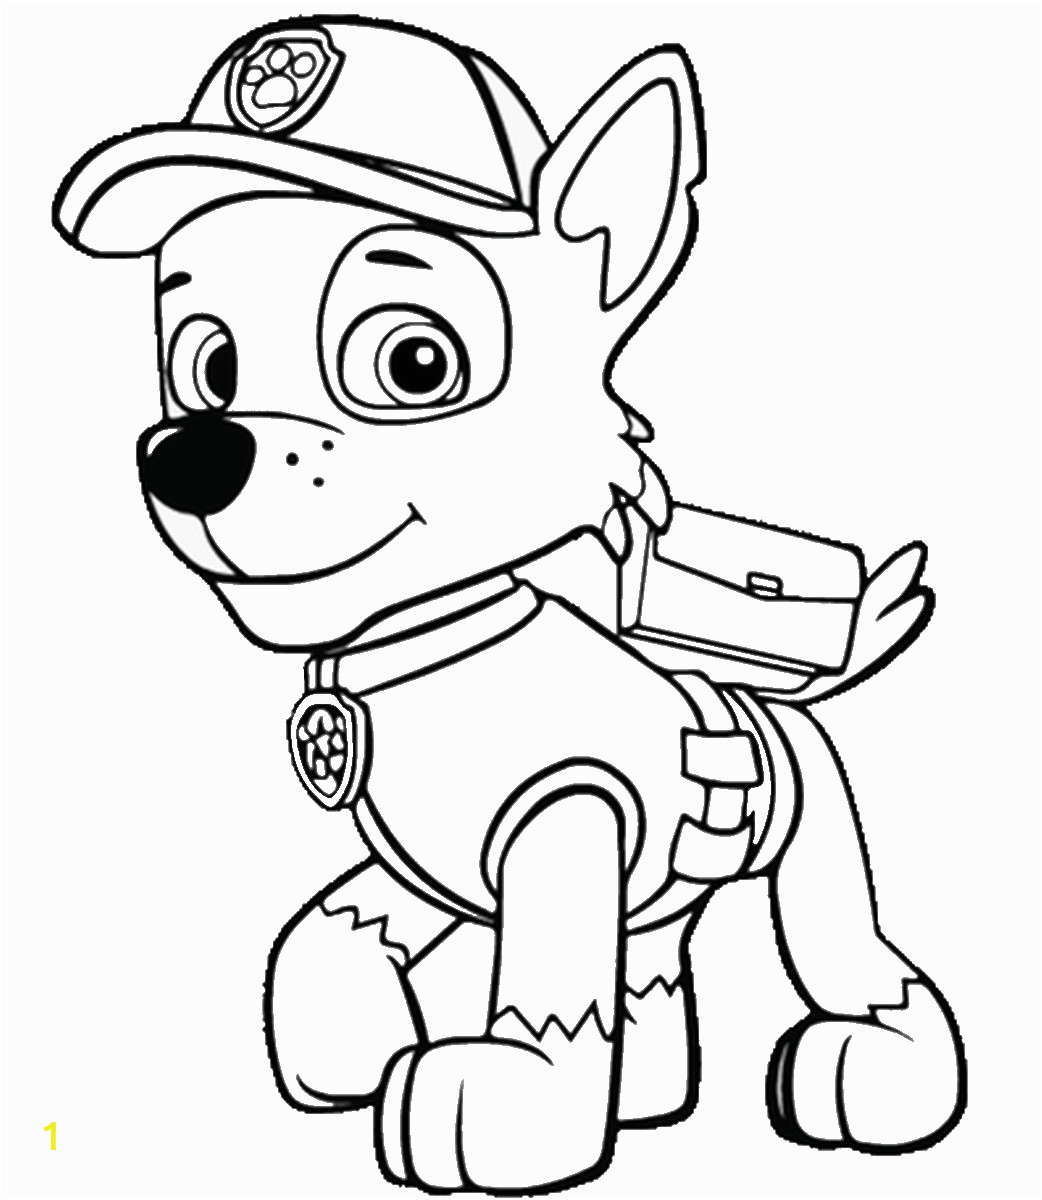 Paw Patrol Coloring Pages Free Printable Sky Paw Patrol Colouring Pages